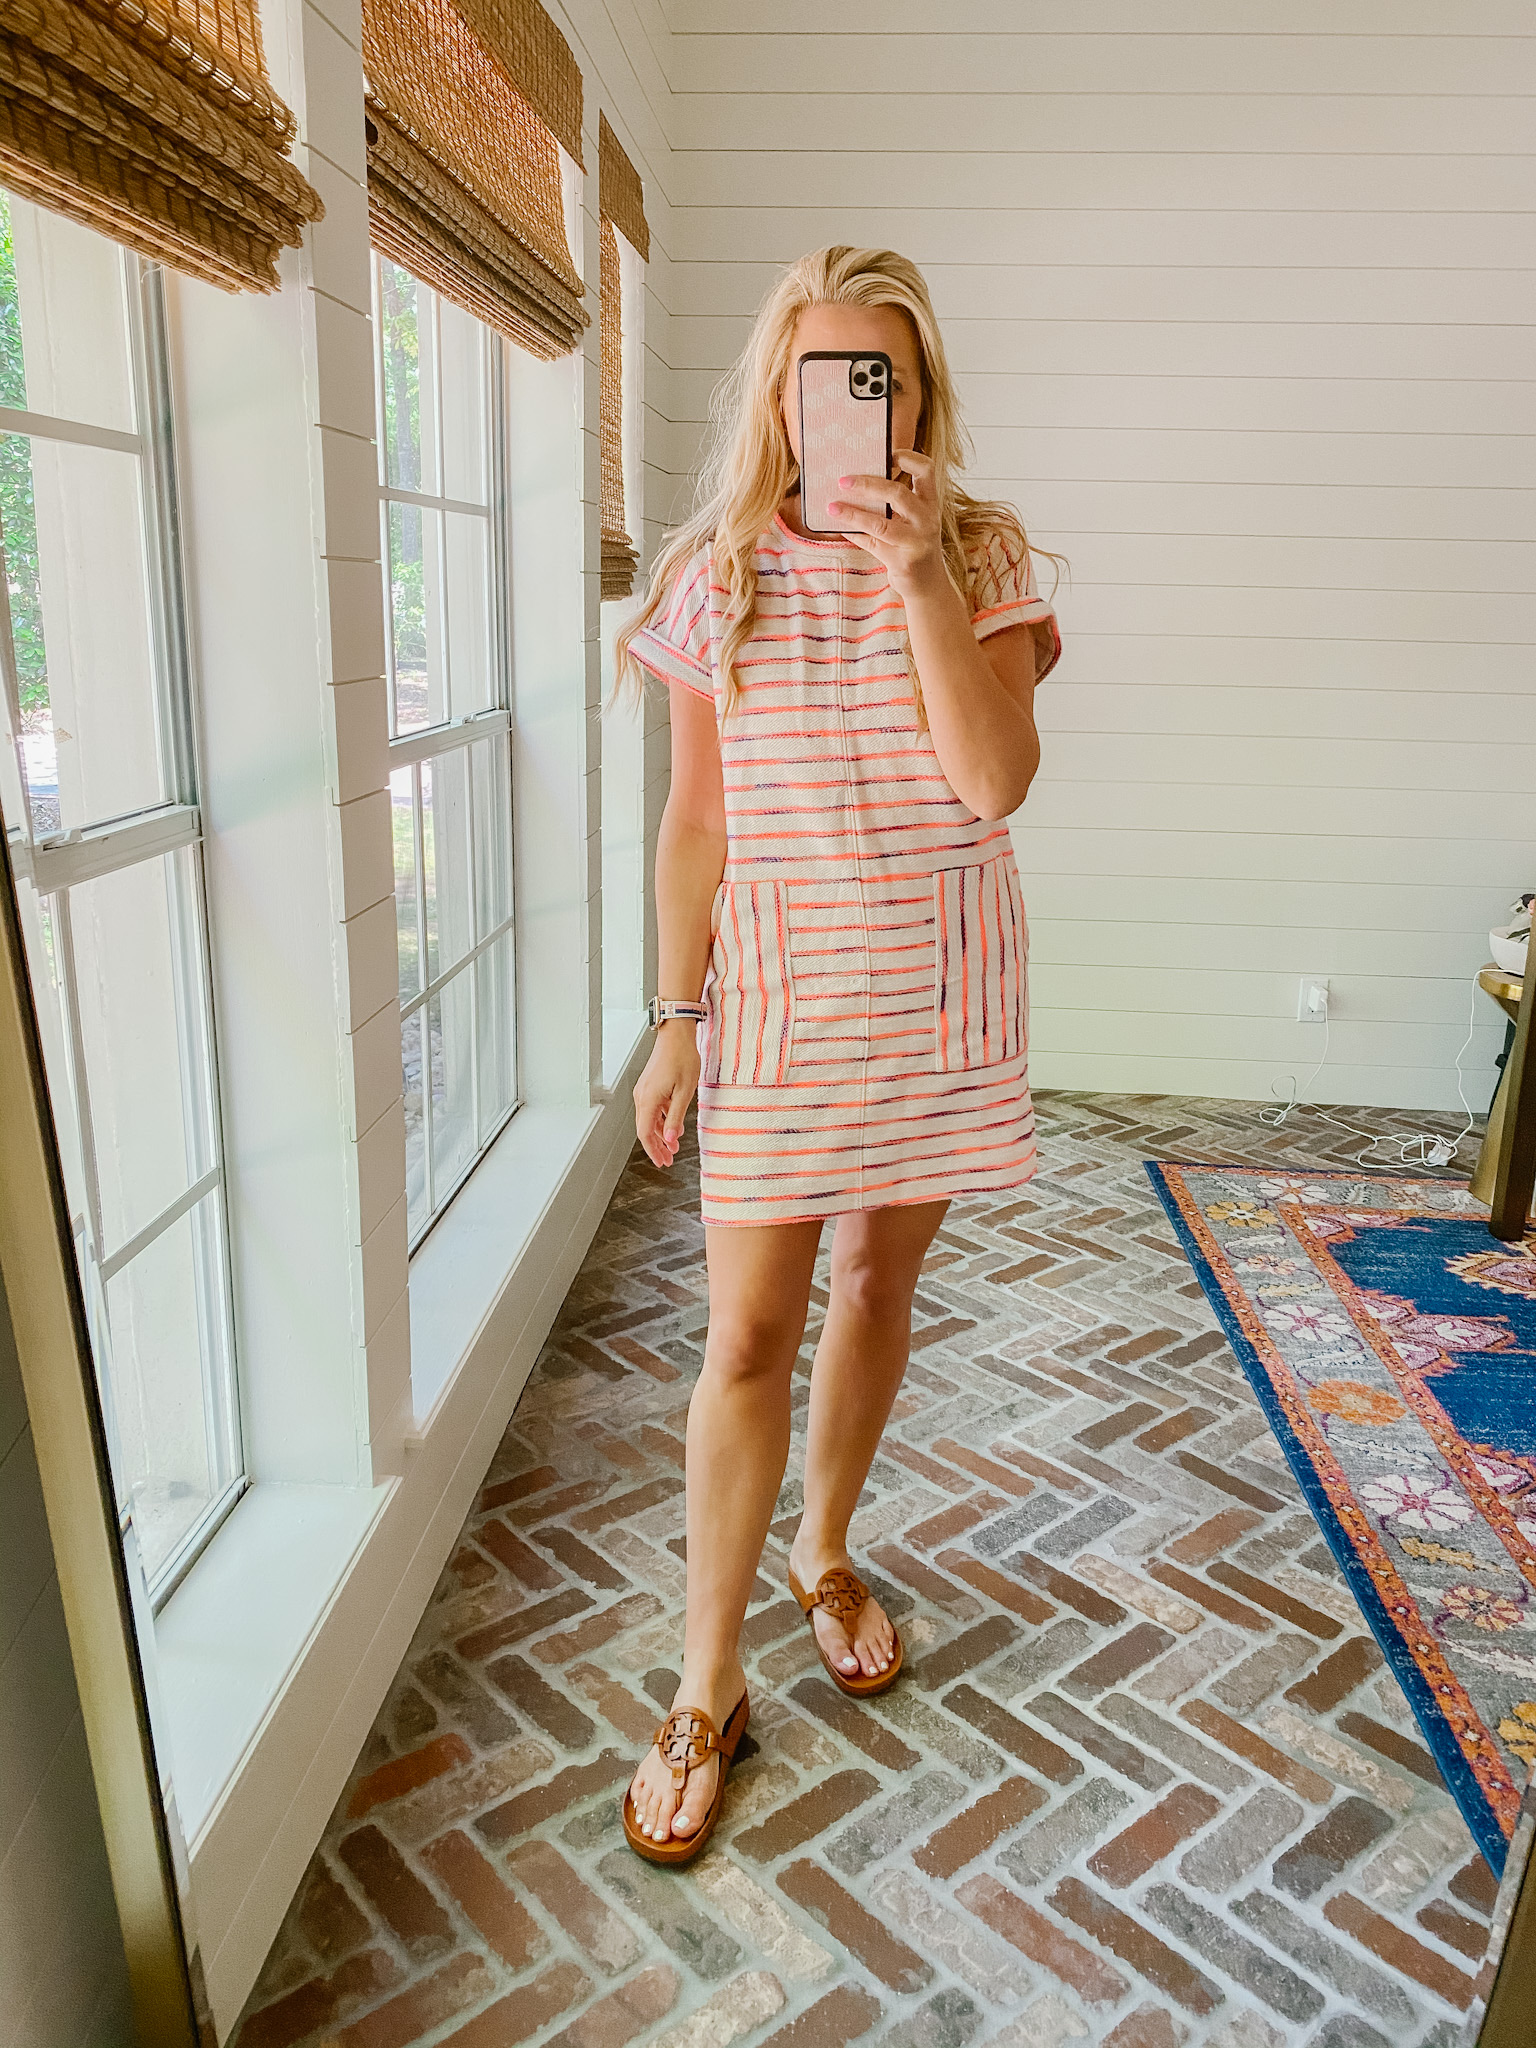 Loft Clothing by popular Houston fashion blog, The House of Fancy: image of a woman wearing a Loft stripe dress with pockets and brown Tory Burch slide sandals.